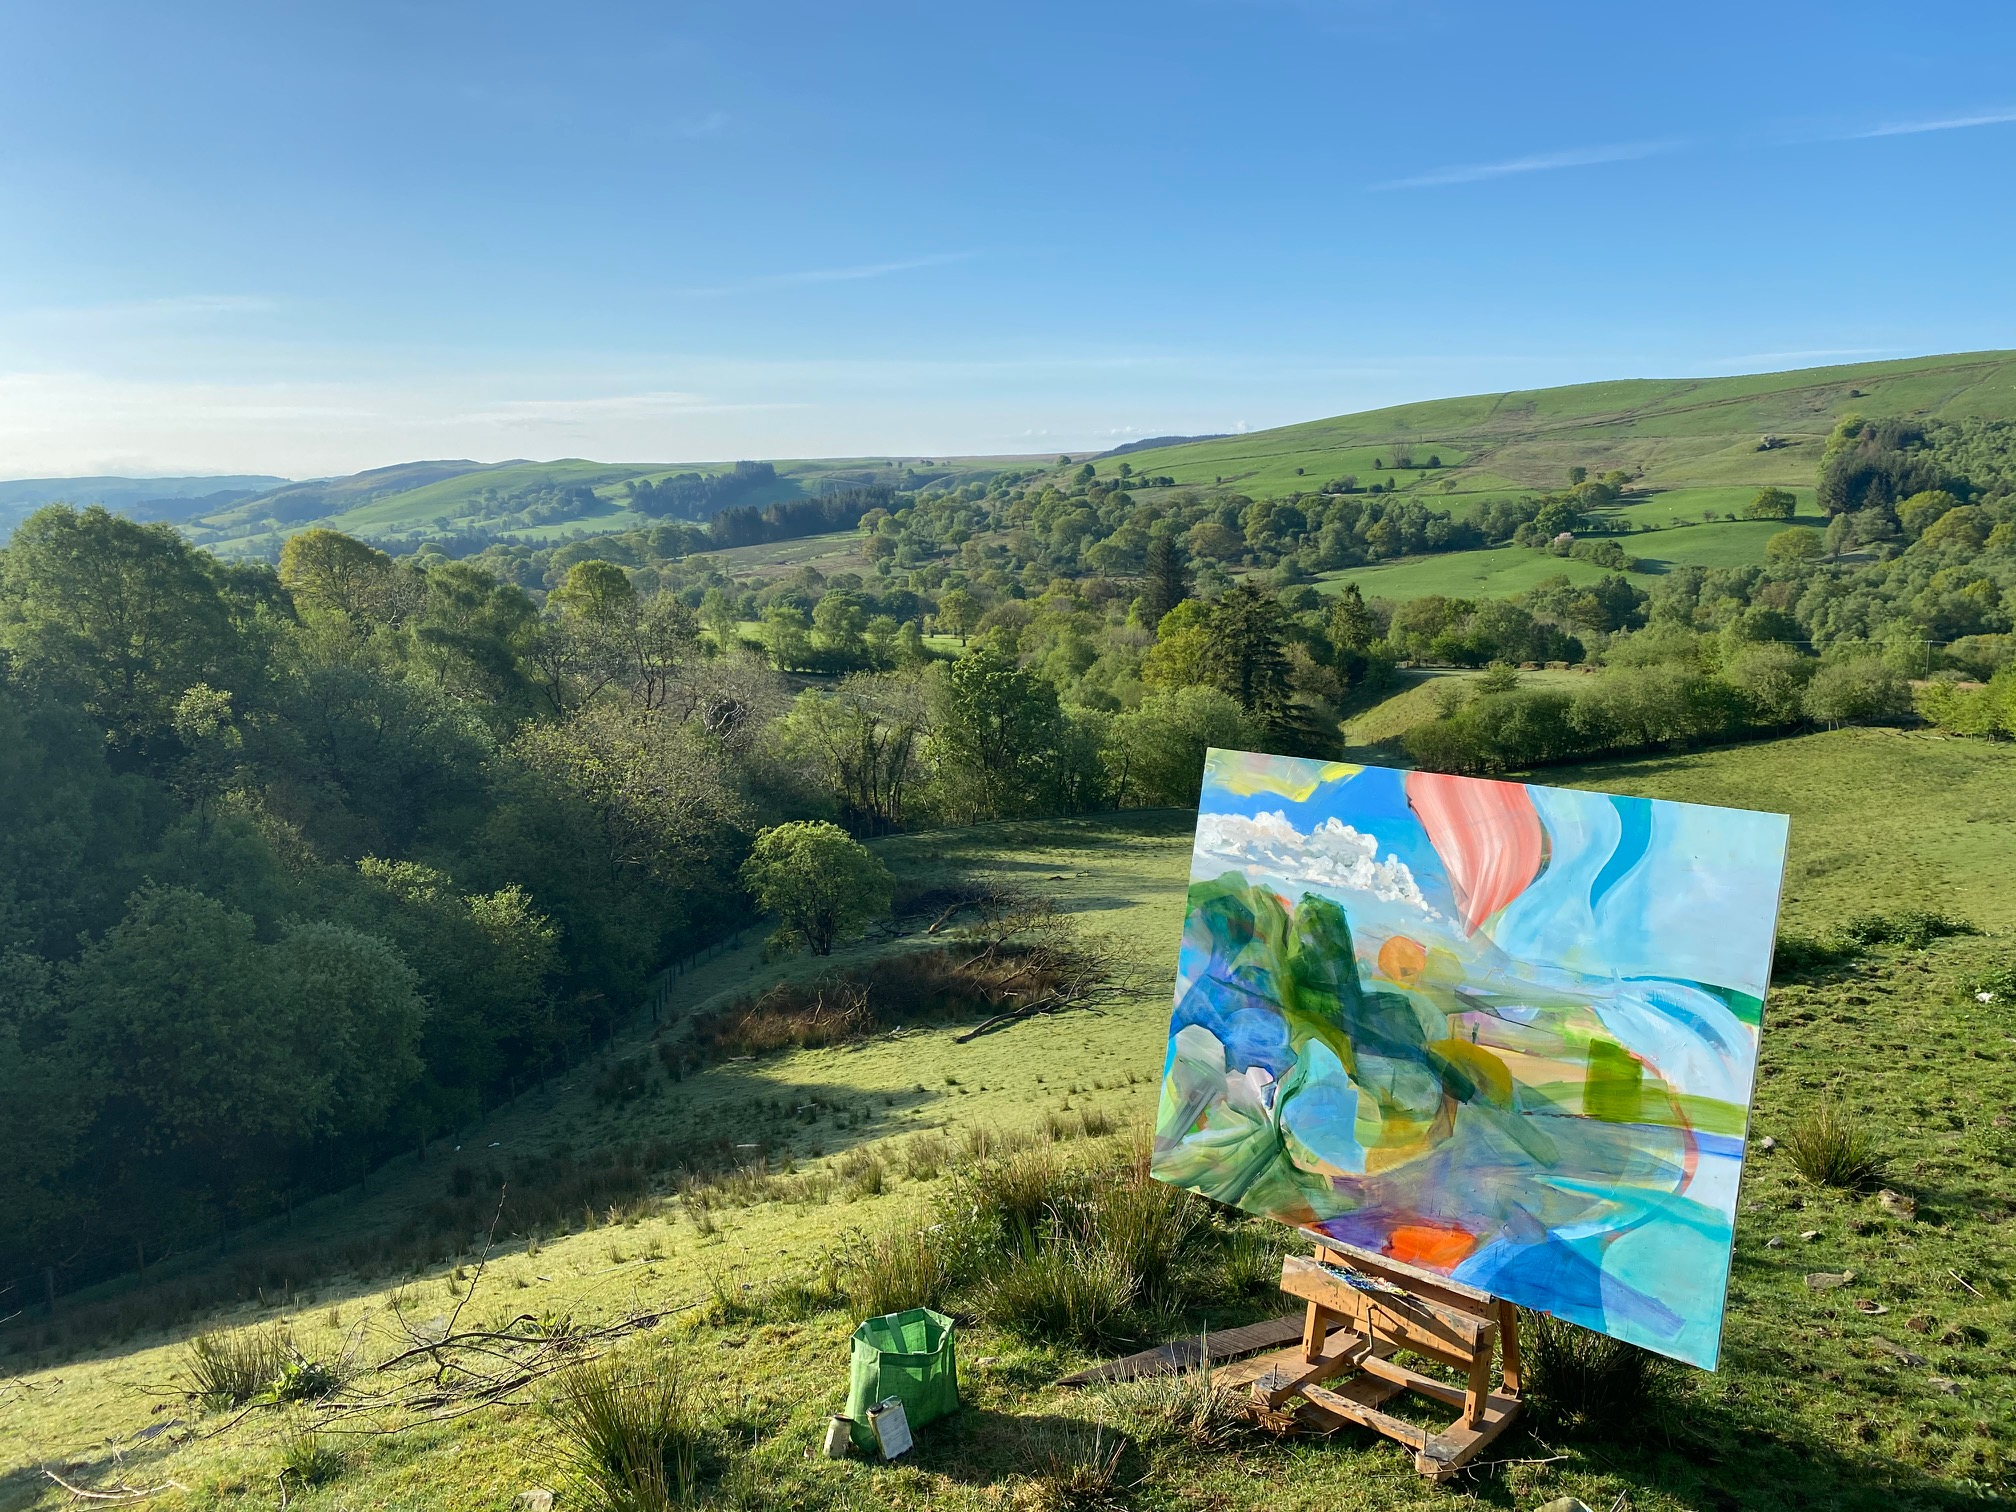 David Dawson's latest paintings in the Welsh Hills